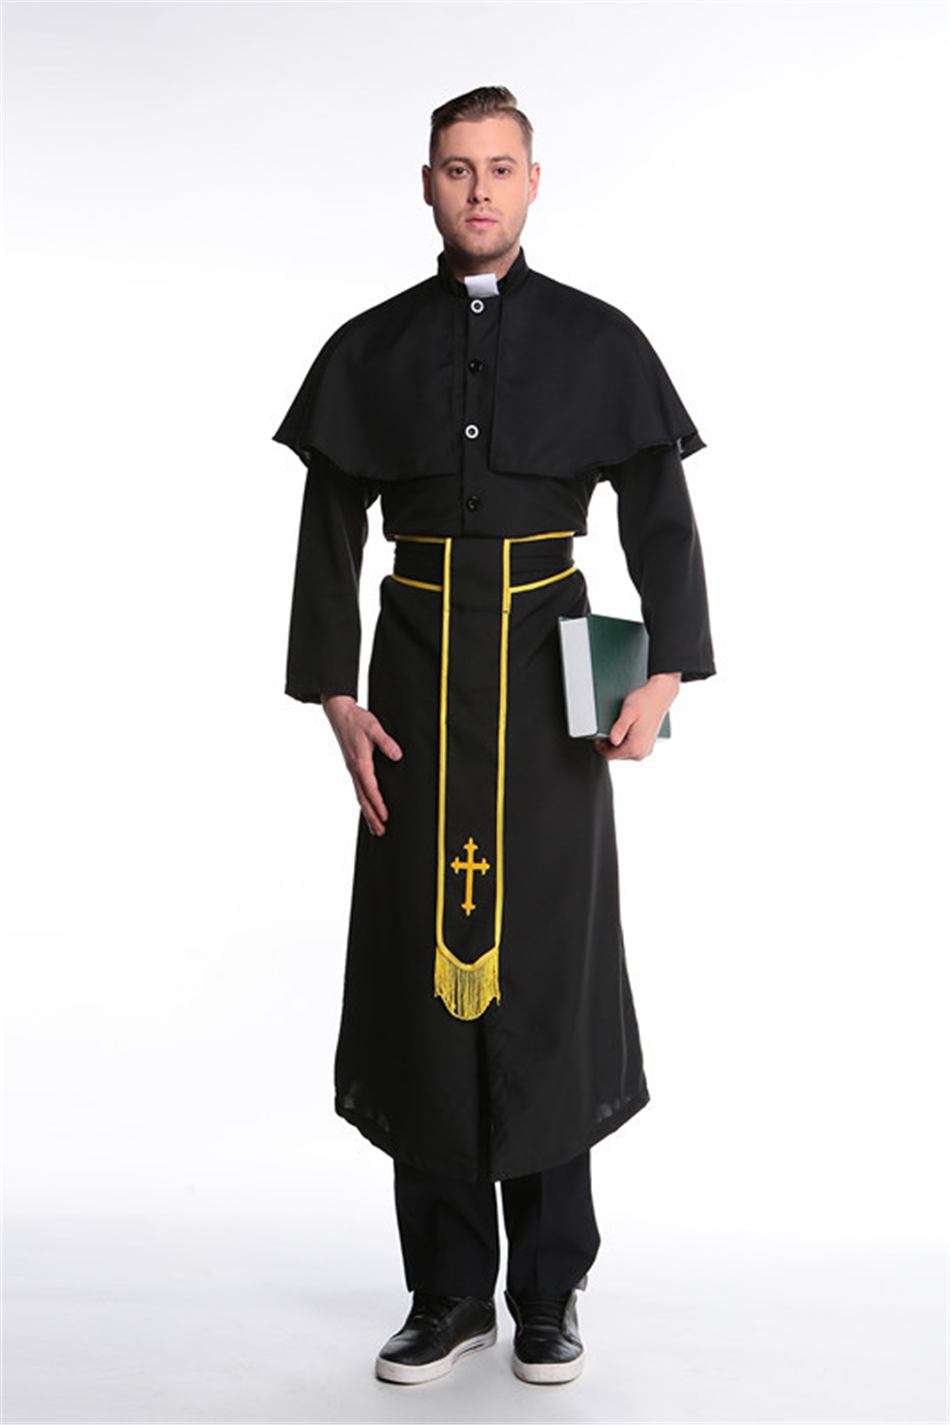 Medieval Cosplay Halloween Costumes for Women Priest Nun Missionary Costume Set 14